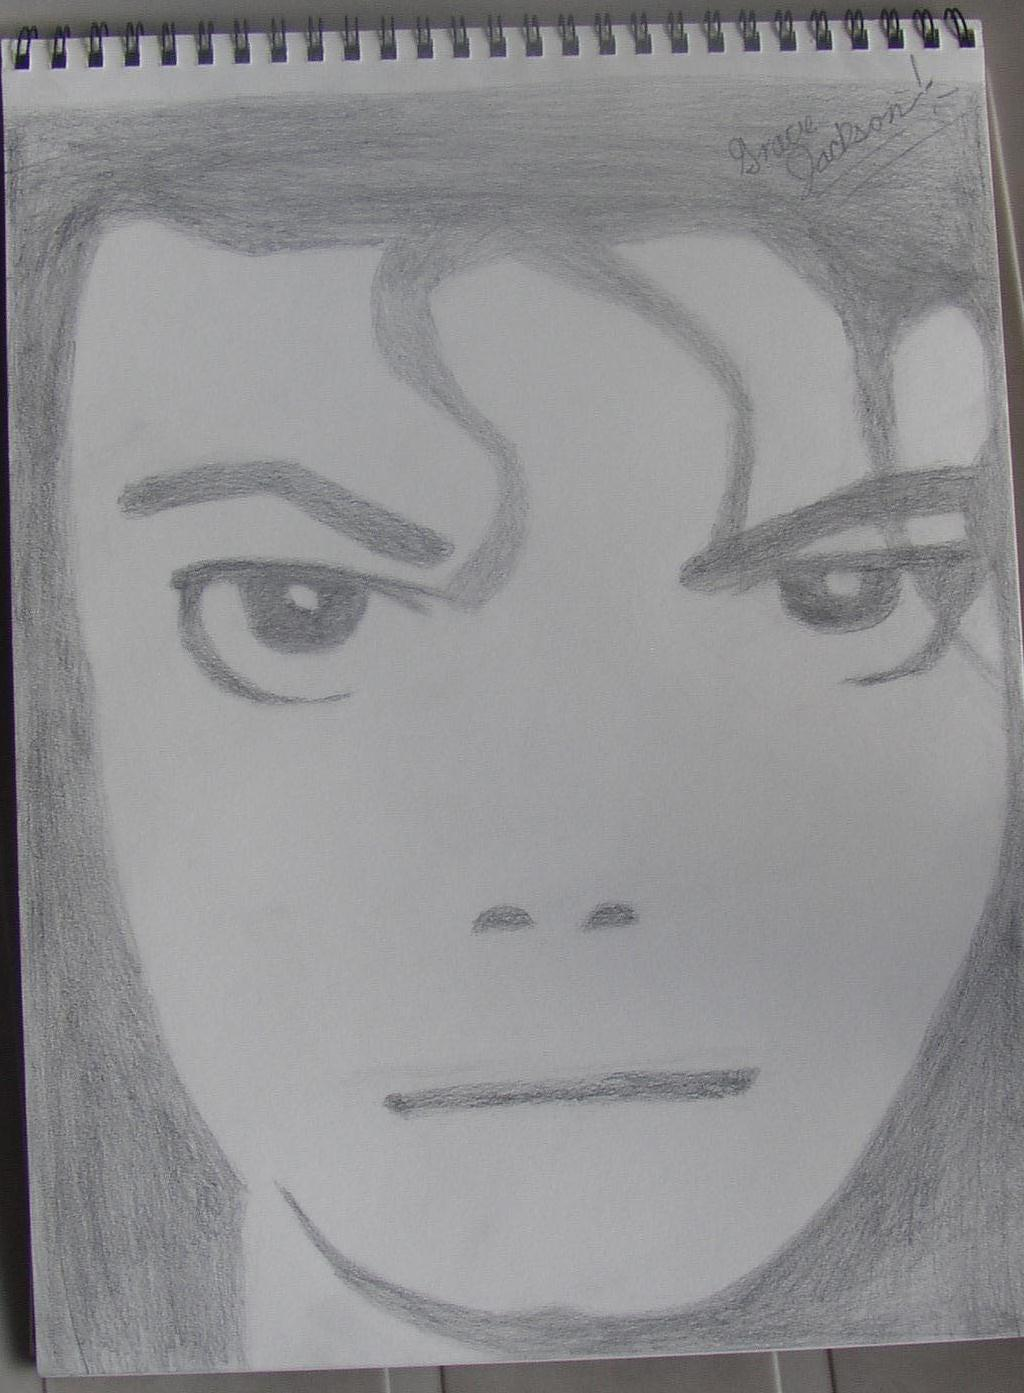 My drawing of mj